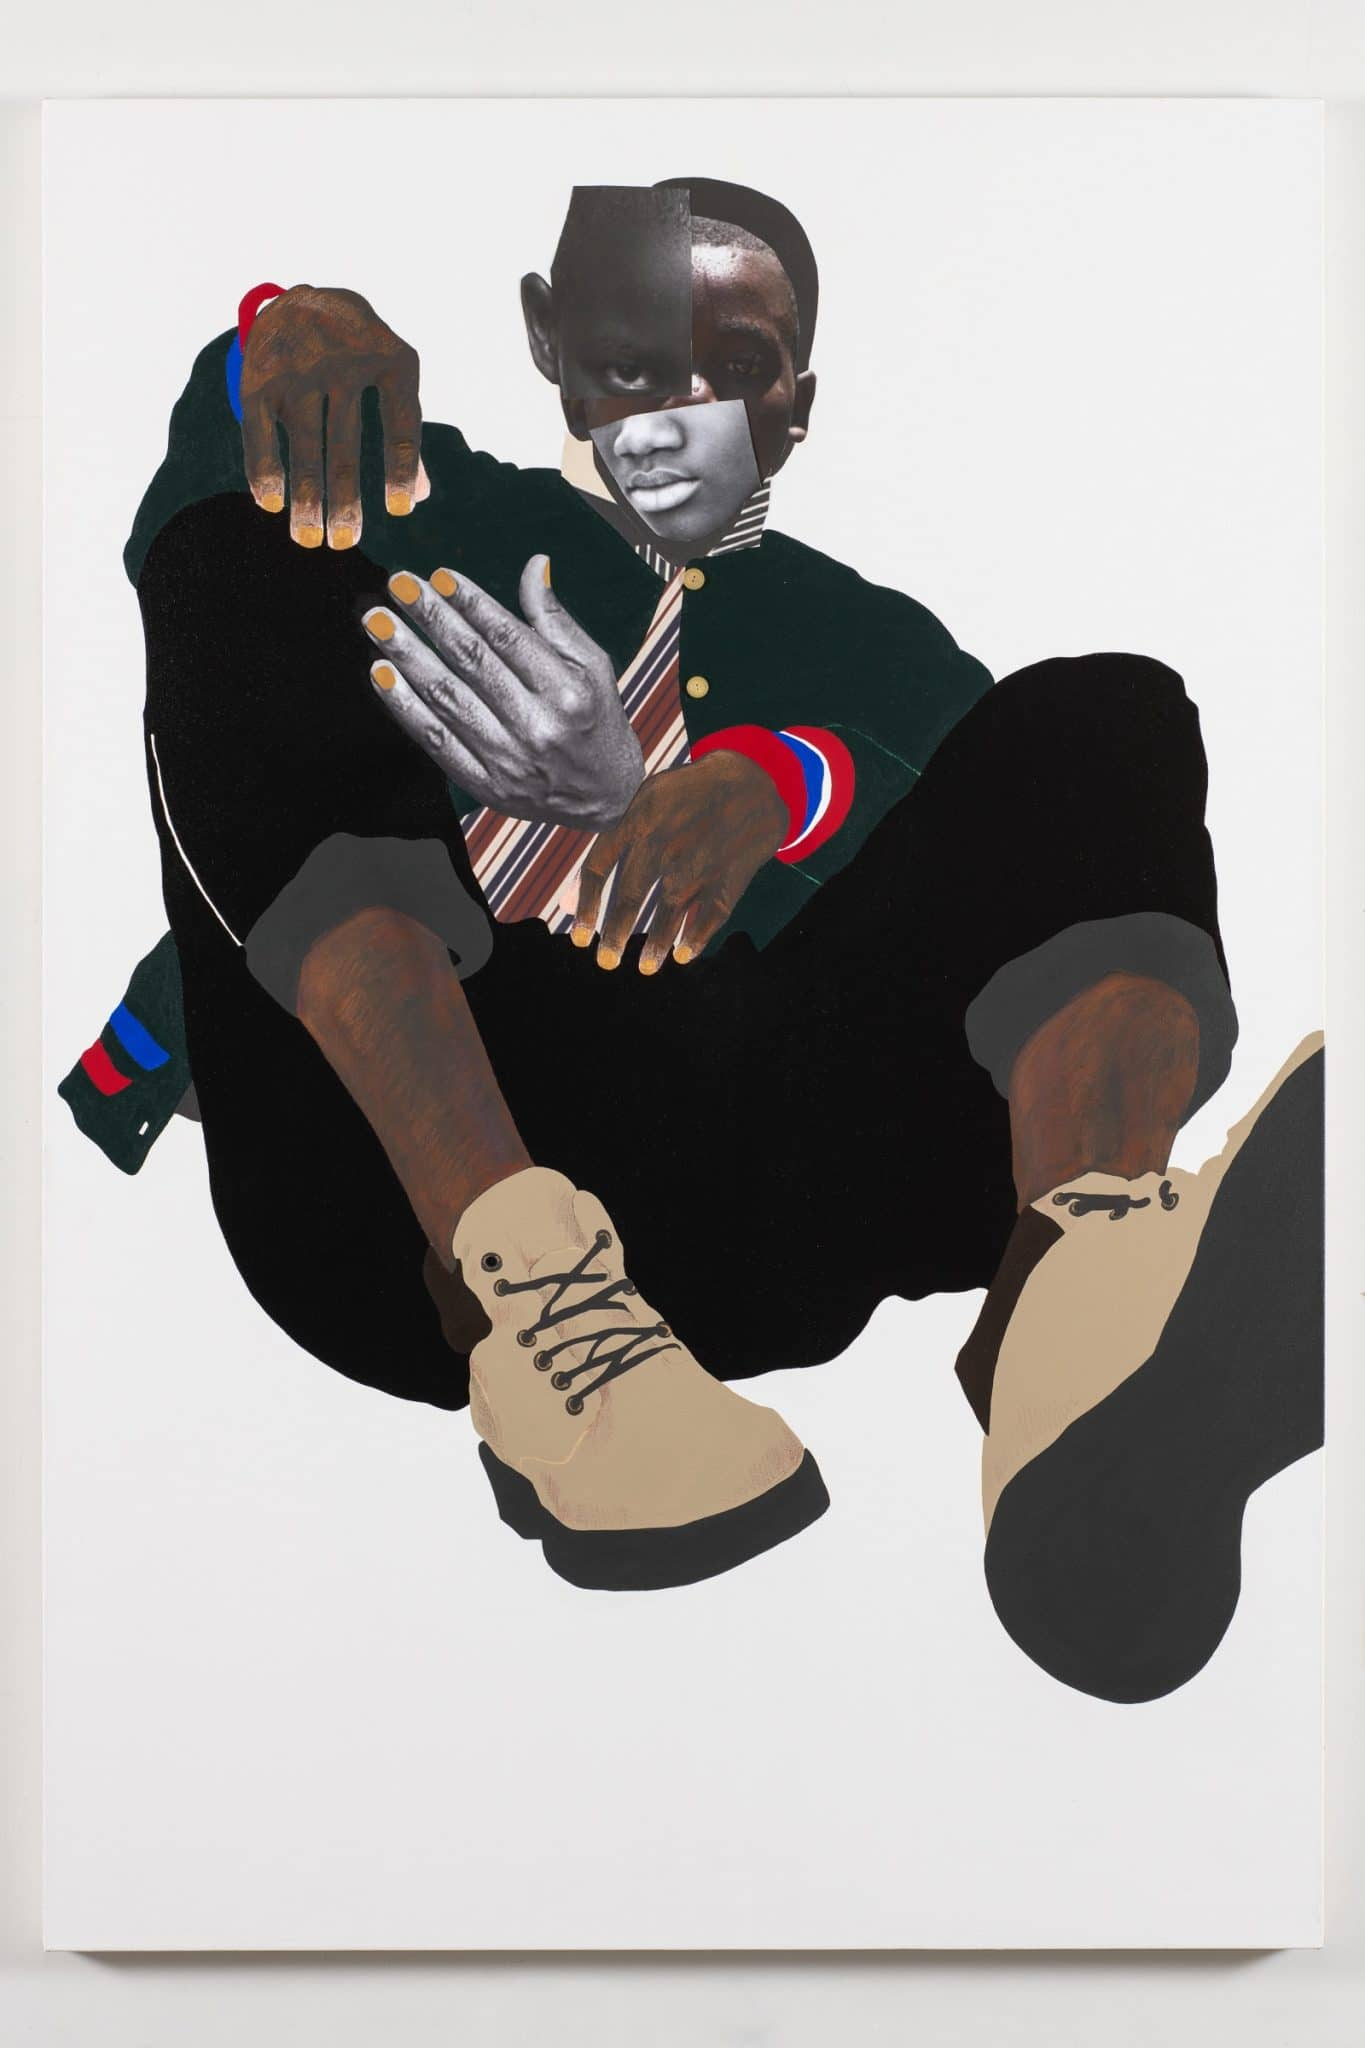 Deborah Roberts, Jamal, 2020. Mixed media collage on canvas. 65 x 45 inches. Artwork © Deborah Roberts. Courtesy the artist; Vielmetter Los Angeles; and Stephen Friedman Gallery, London. Image courtesy The Contemporary Austin. Photograph by Paul Bardagjy.